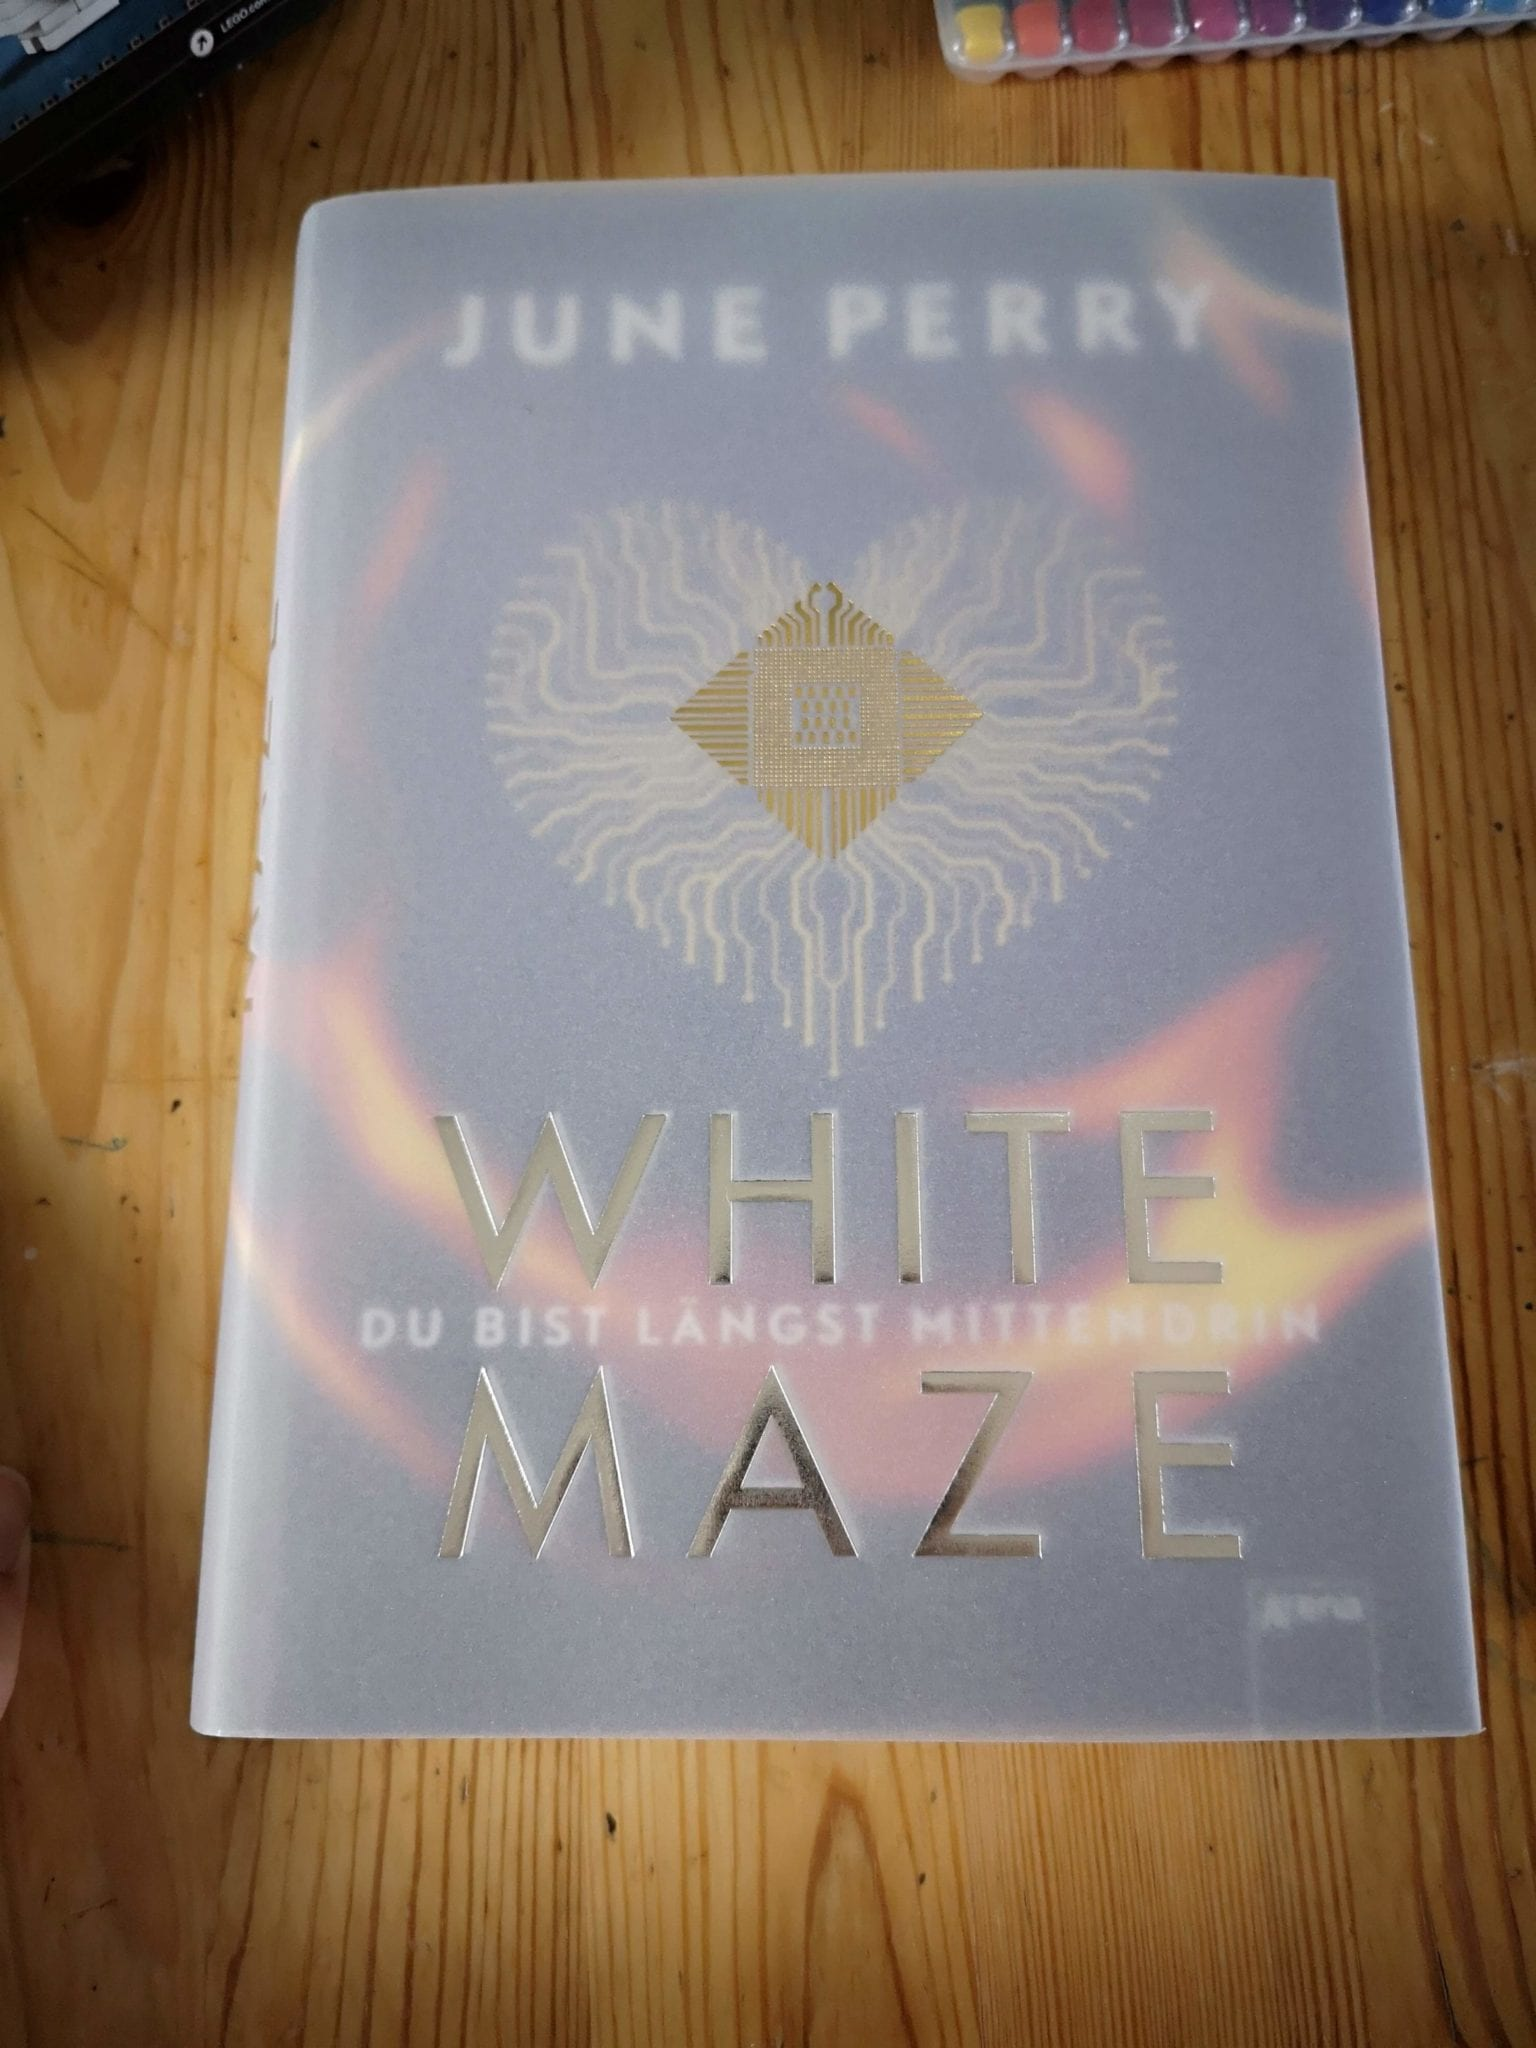 Whitze Maze_June Perry